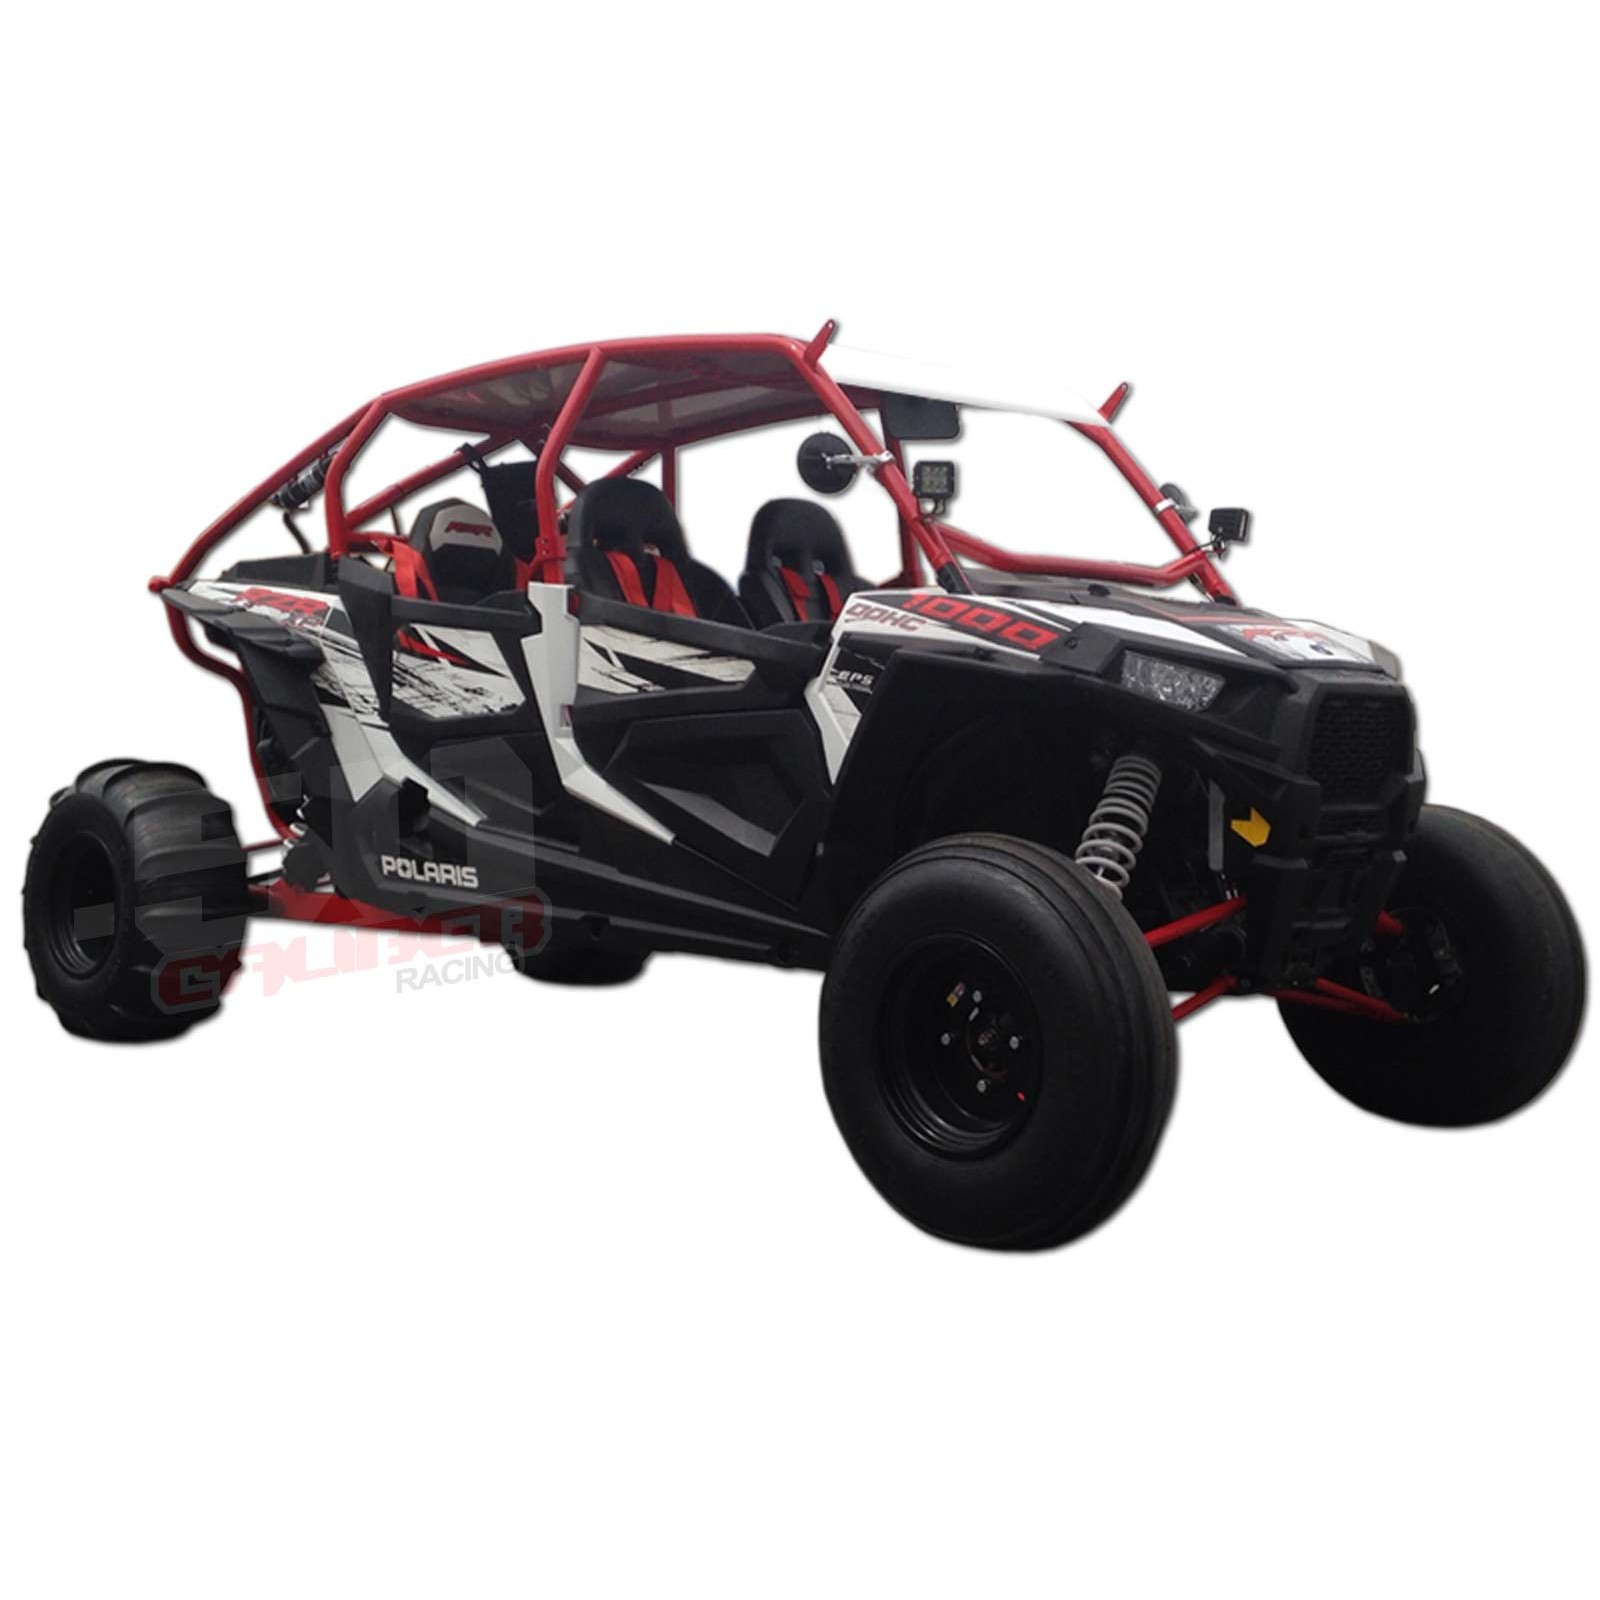 Performance UTV parts & Accessories, RZR doors, Cages, Seats